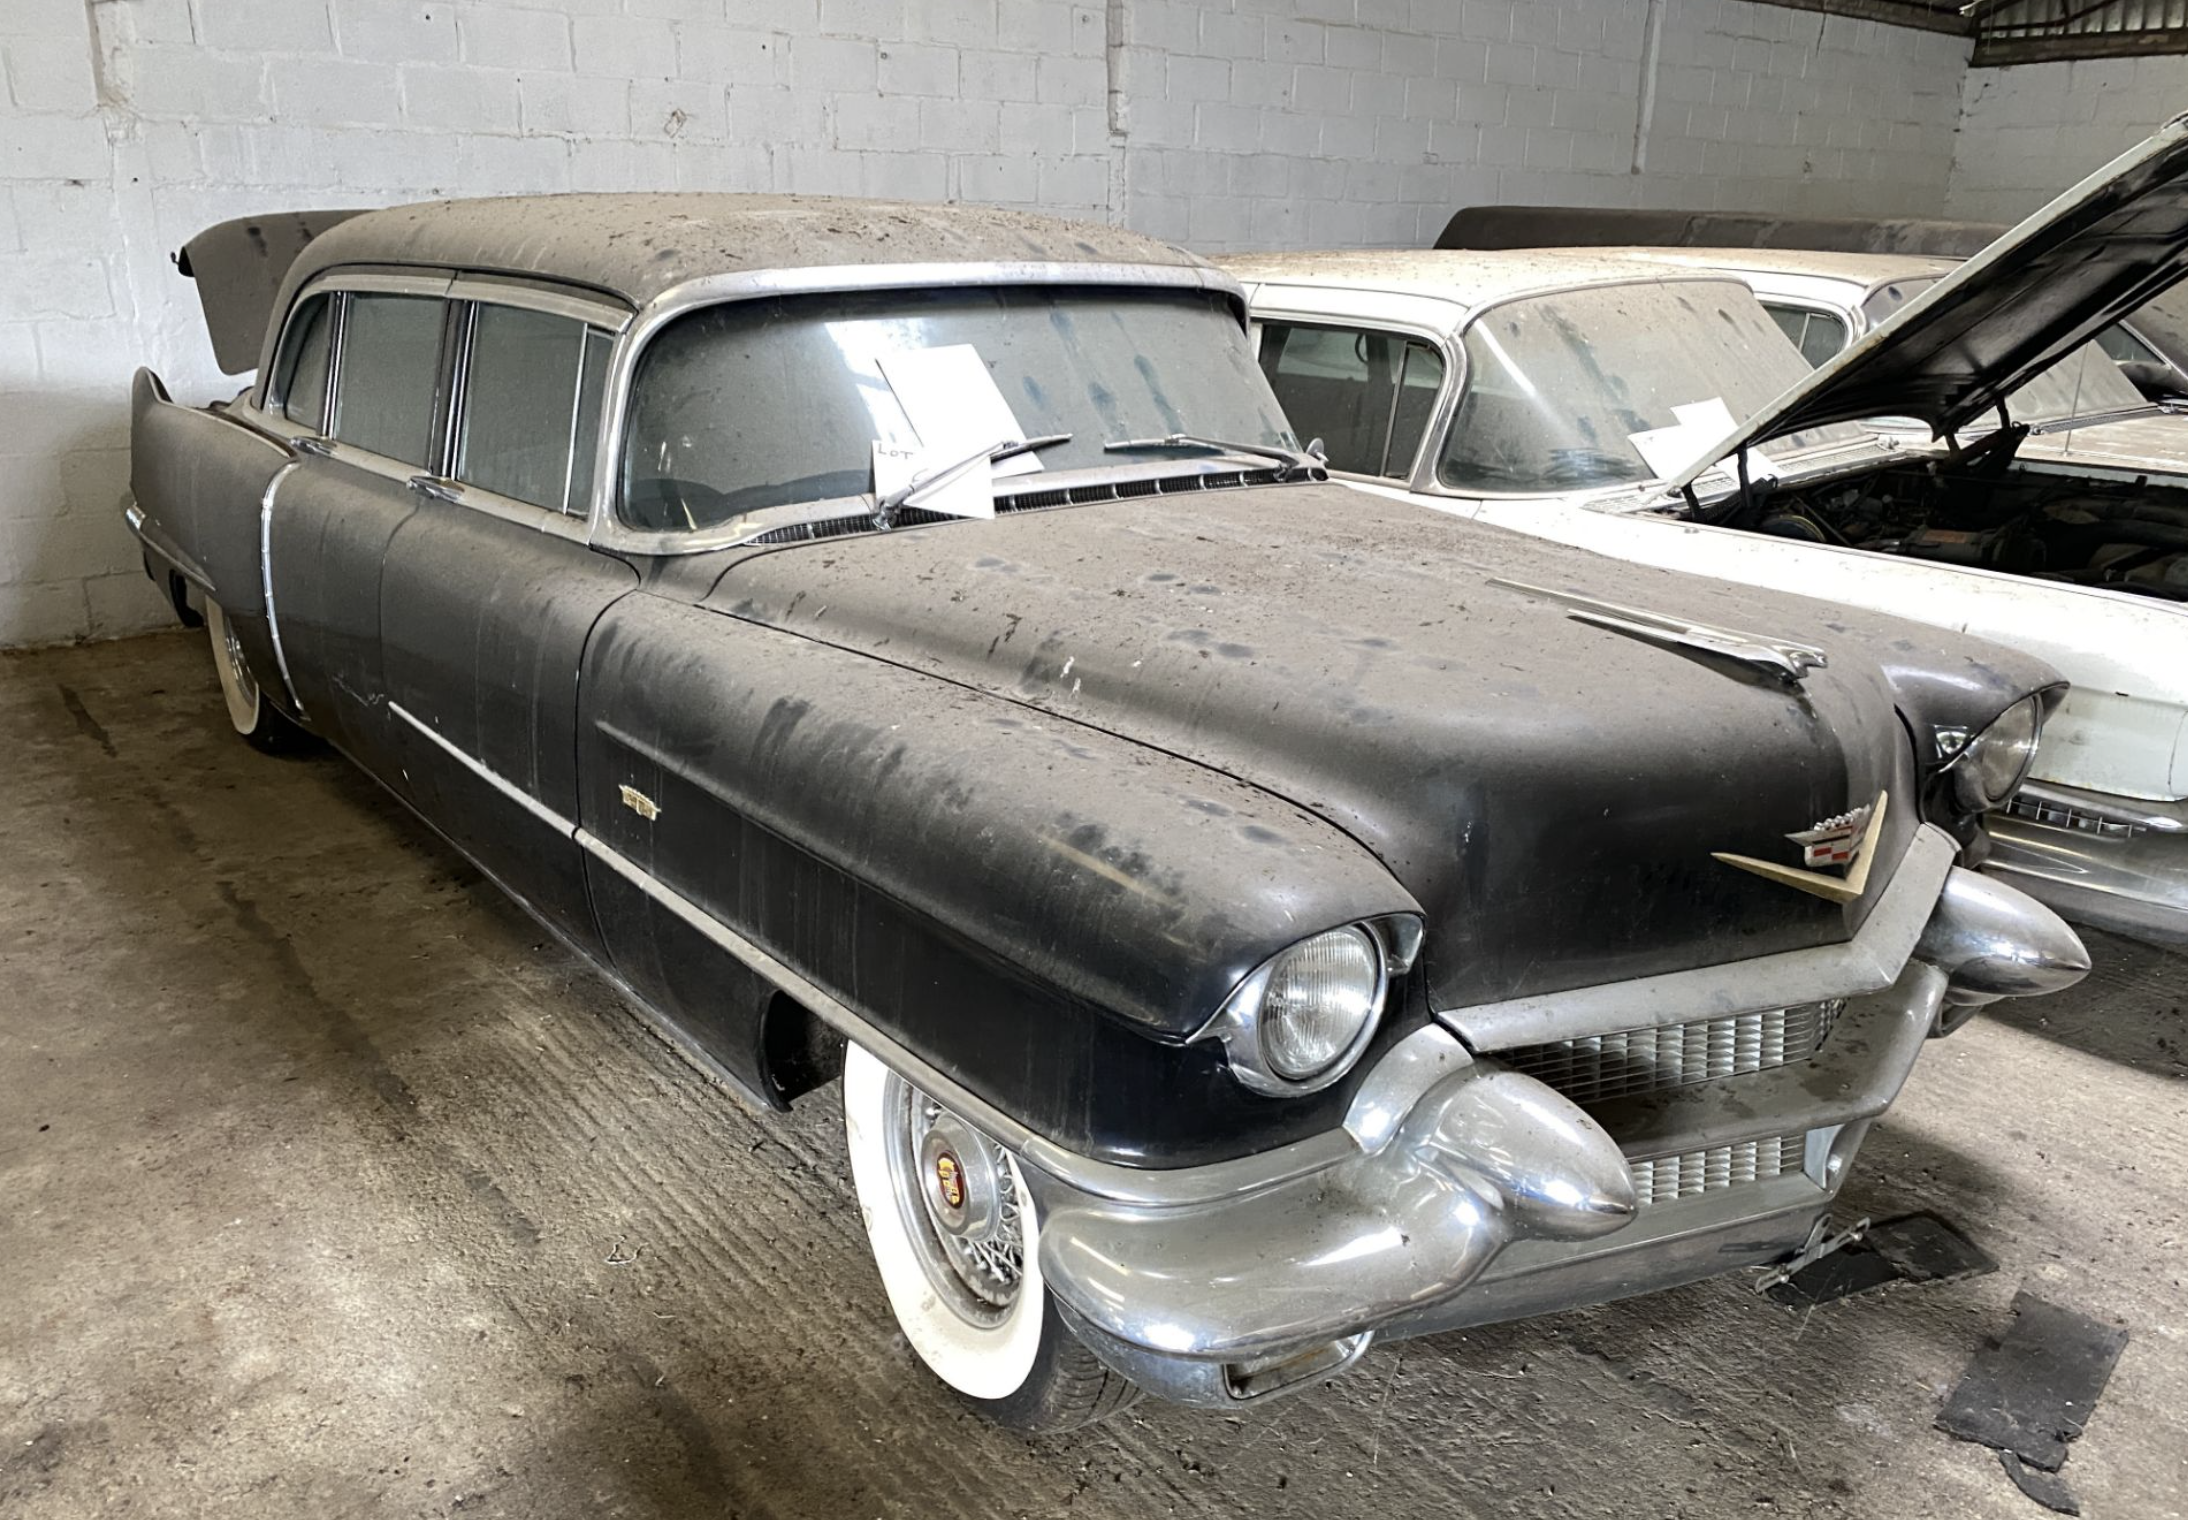 Dust to dust: 14 vintage Cadillacs in British barn find auction